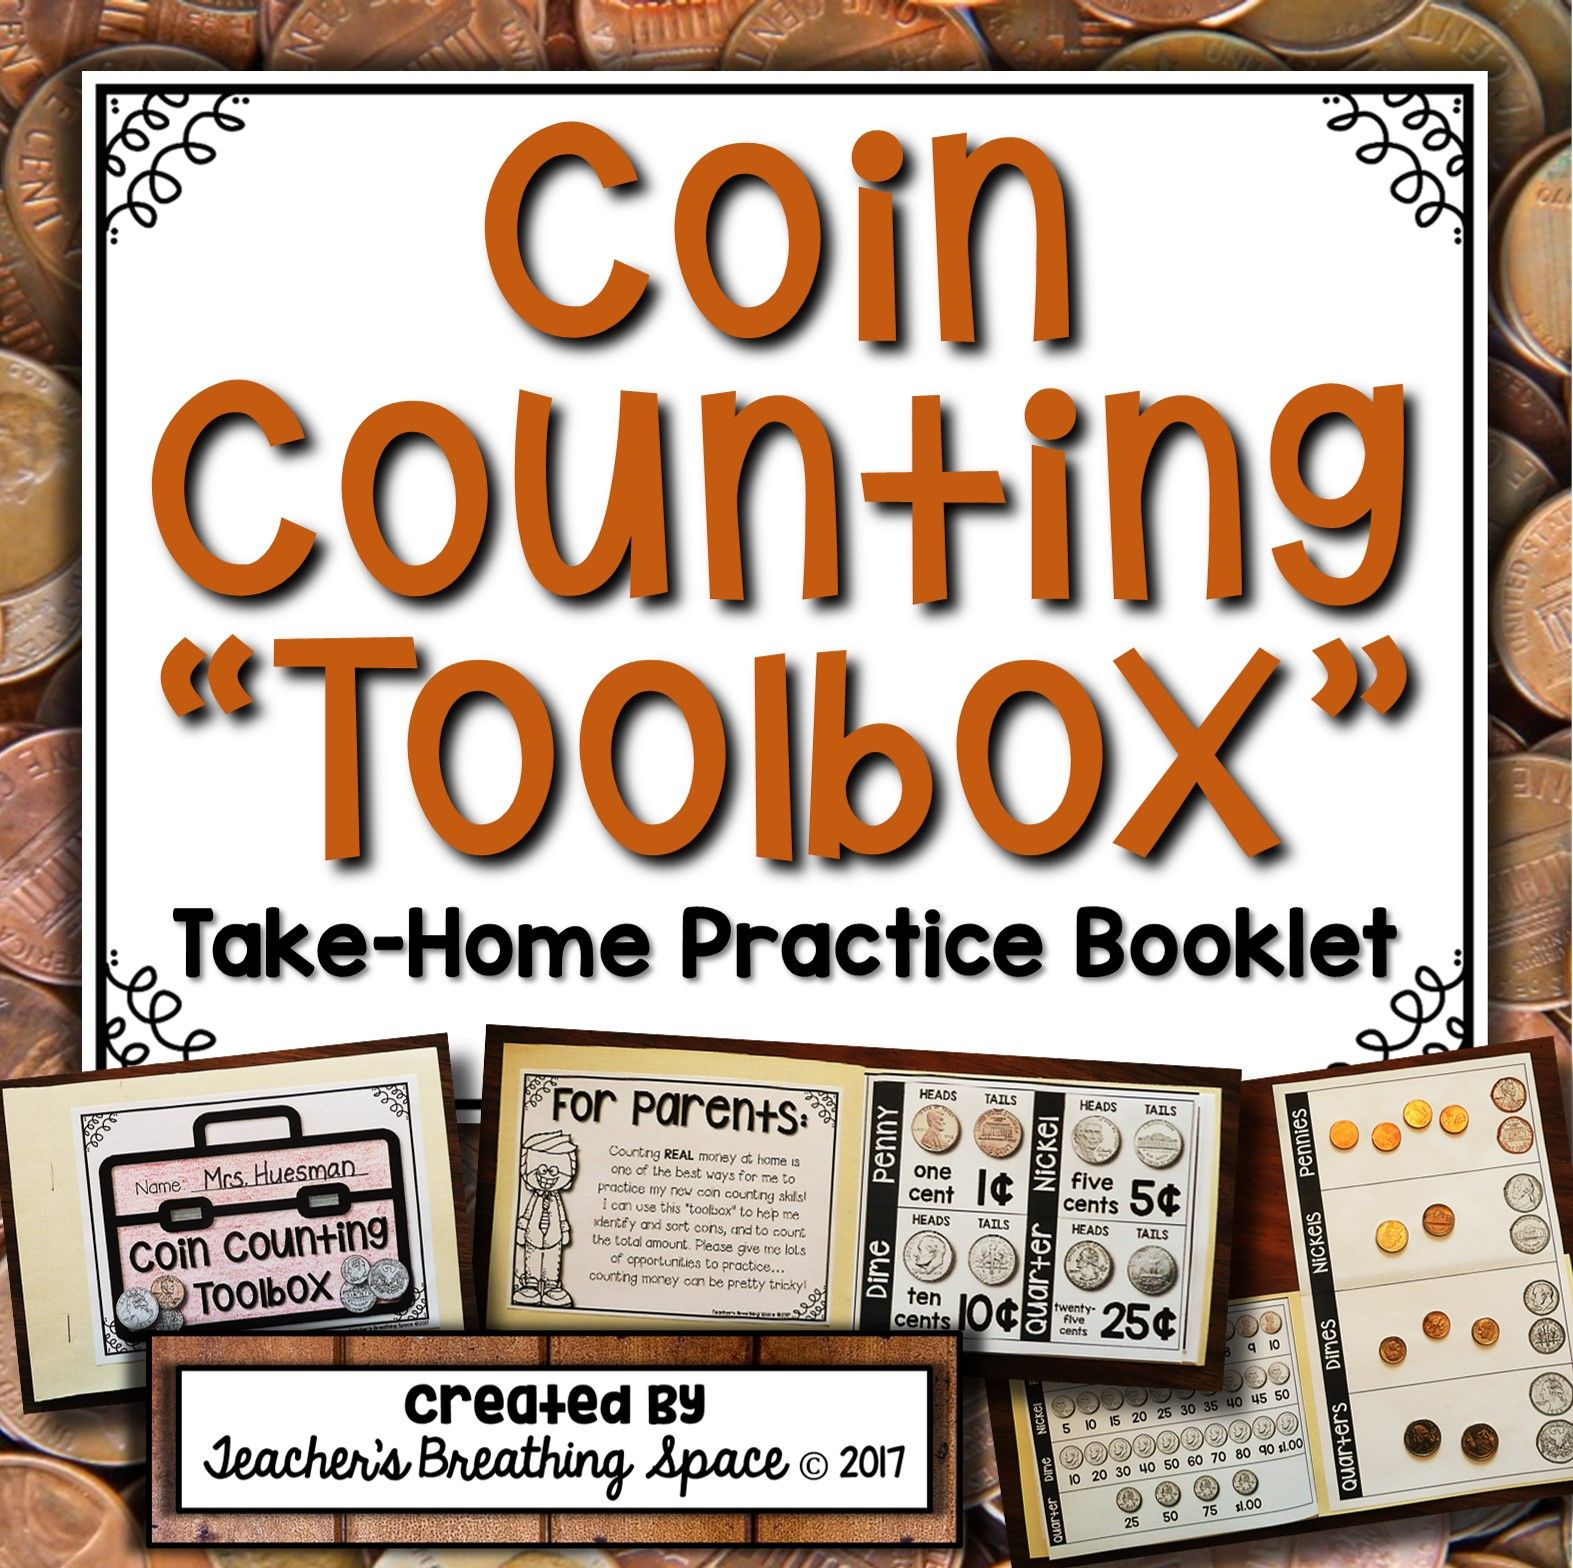 U S Coin Counting Toolbox Take Home Coin Counting